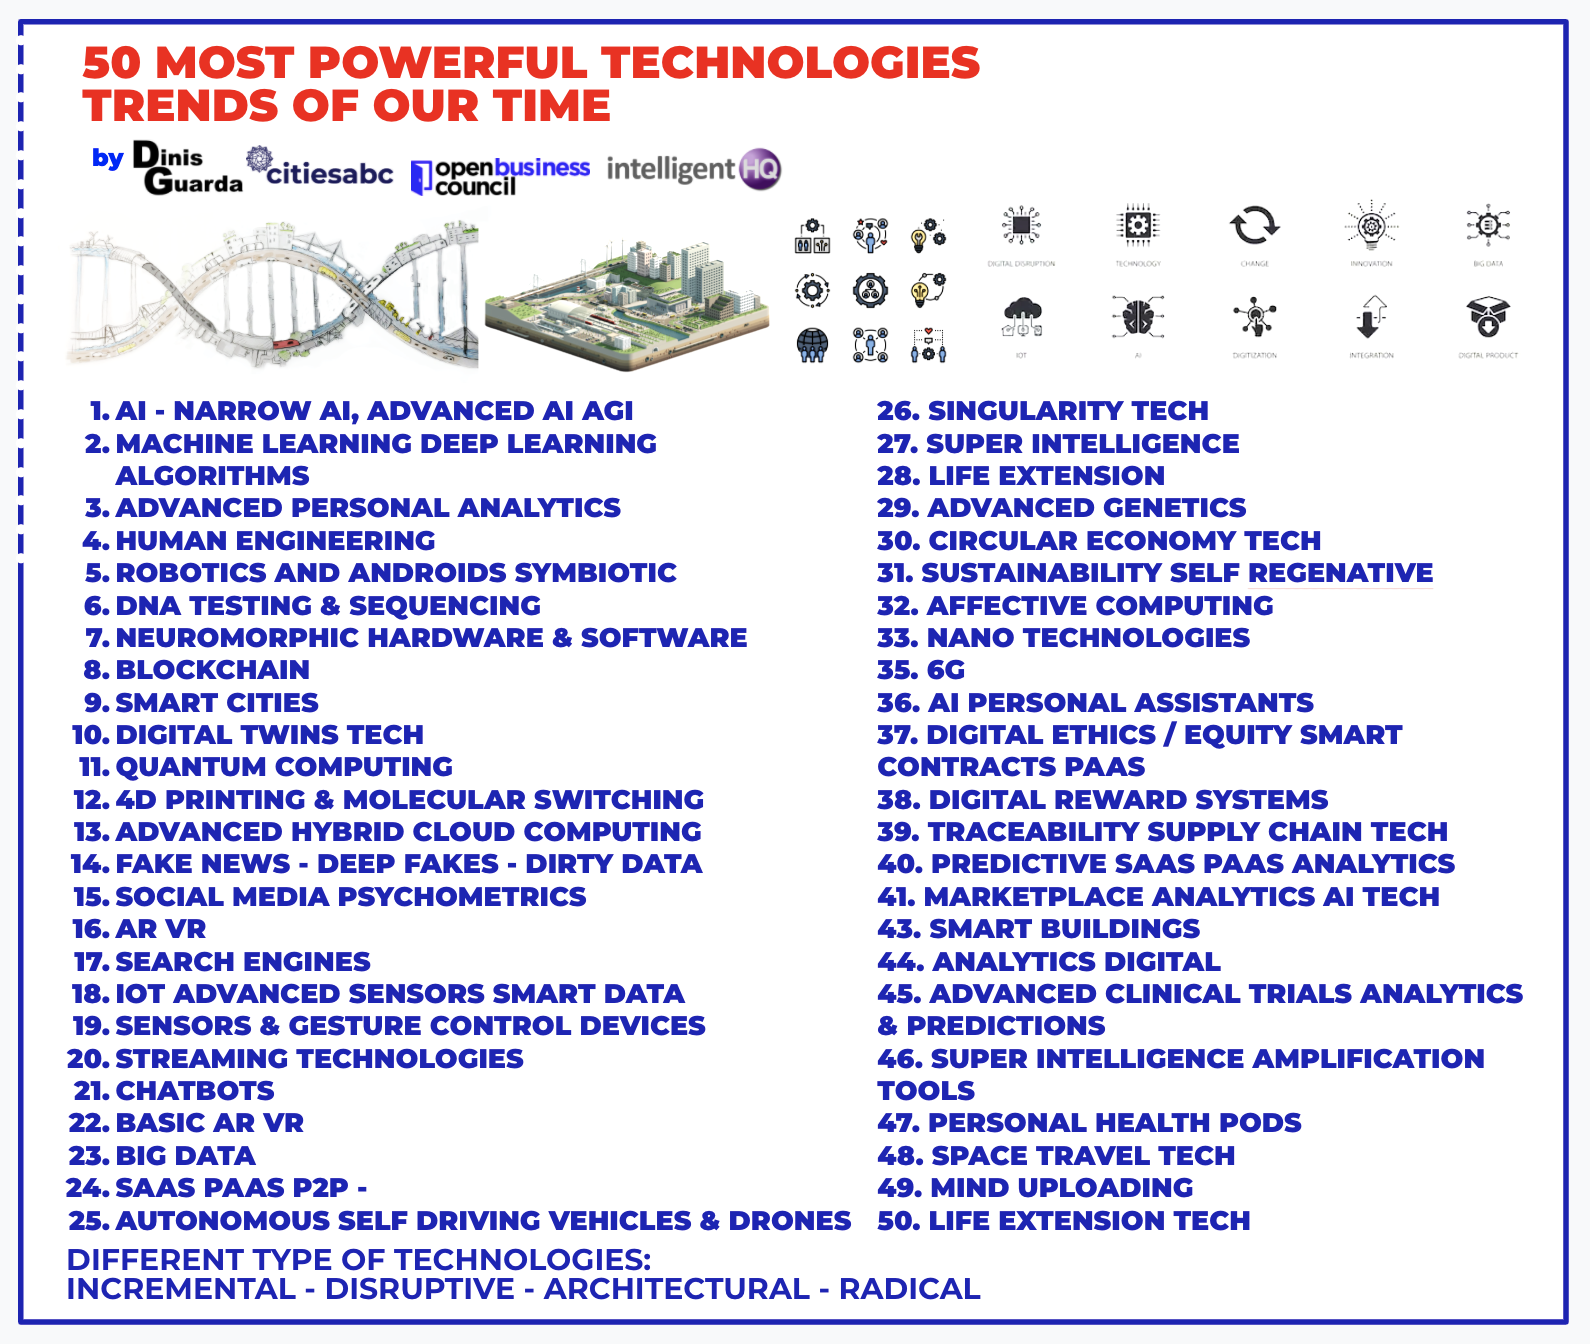 50 Most Powerful Technologies Trends of our Society 5.0 Time